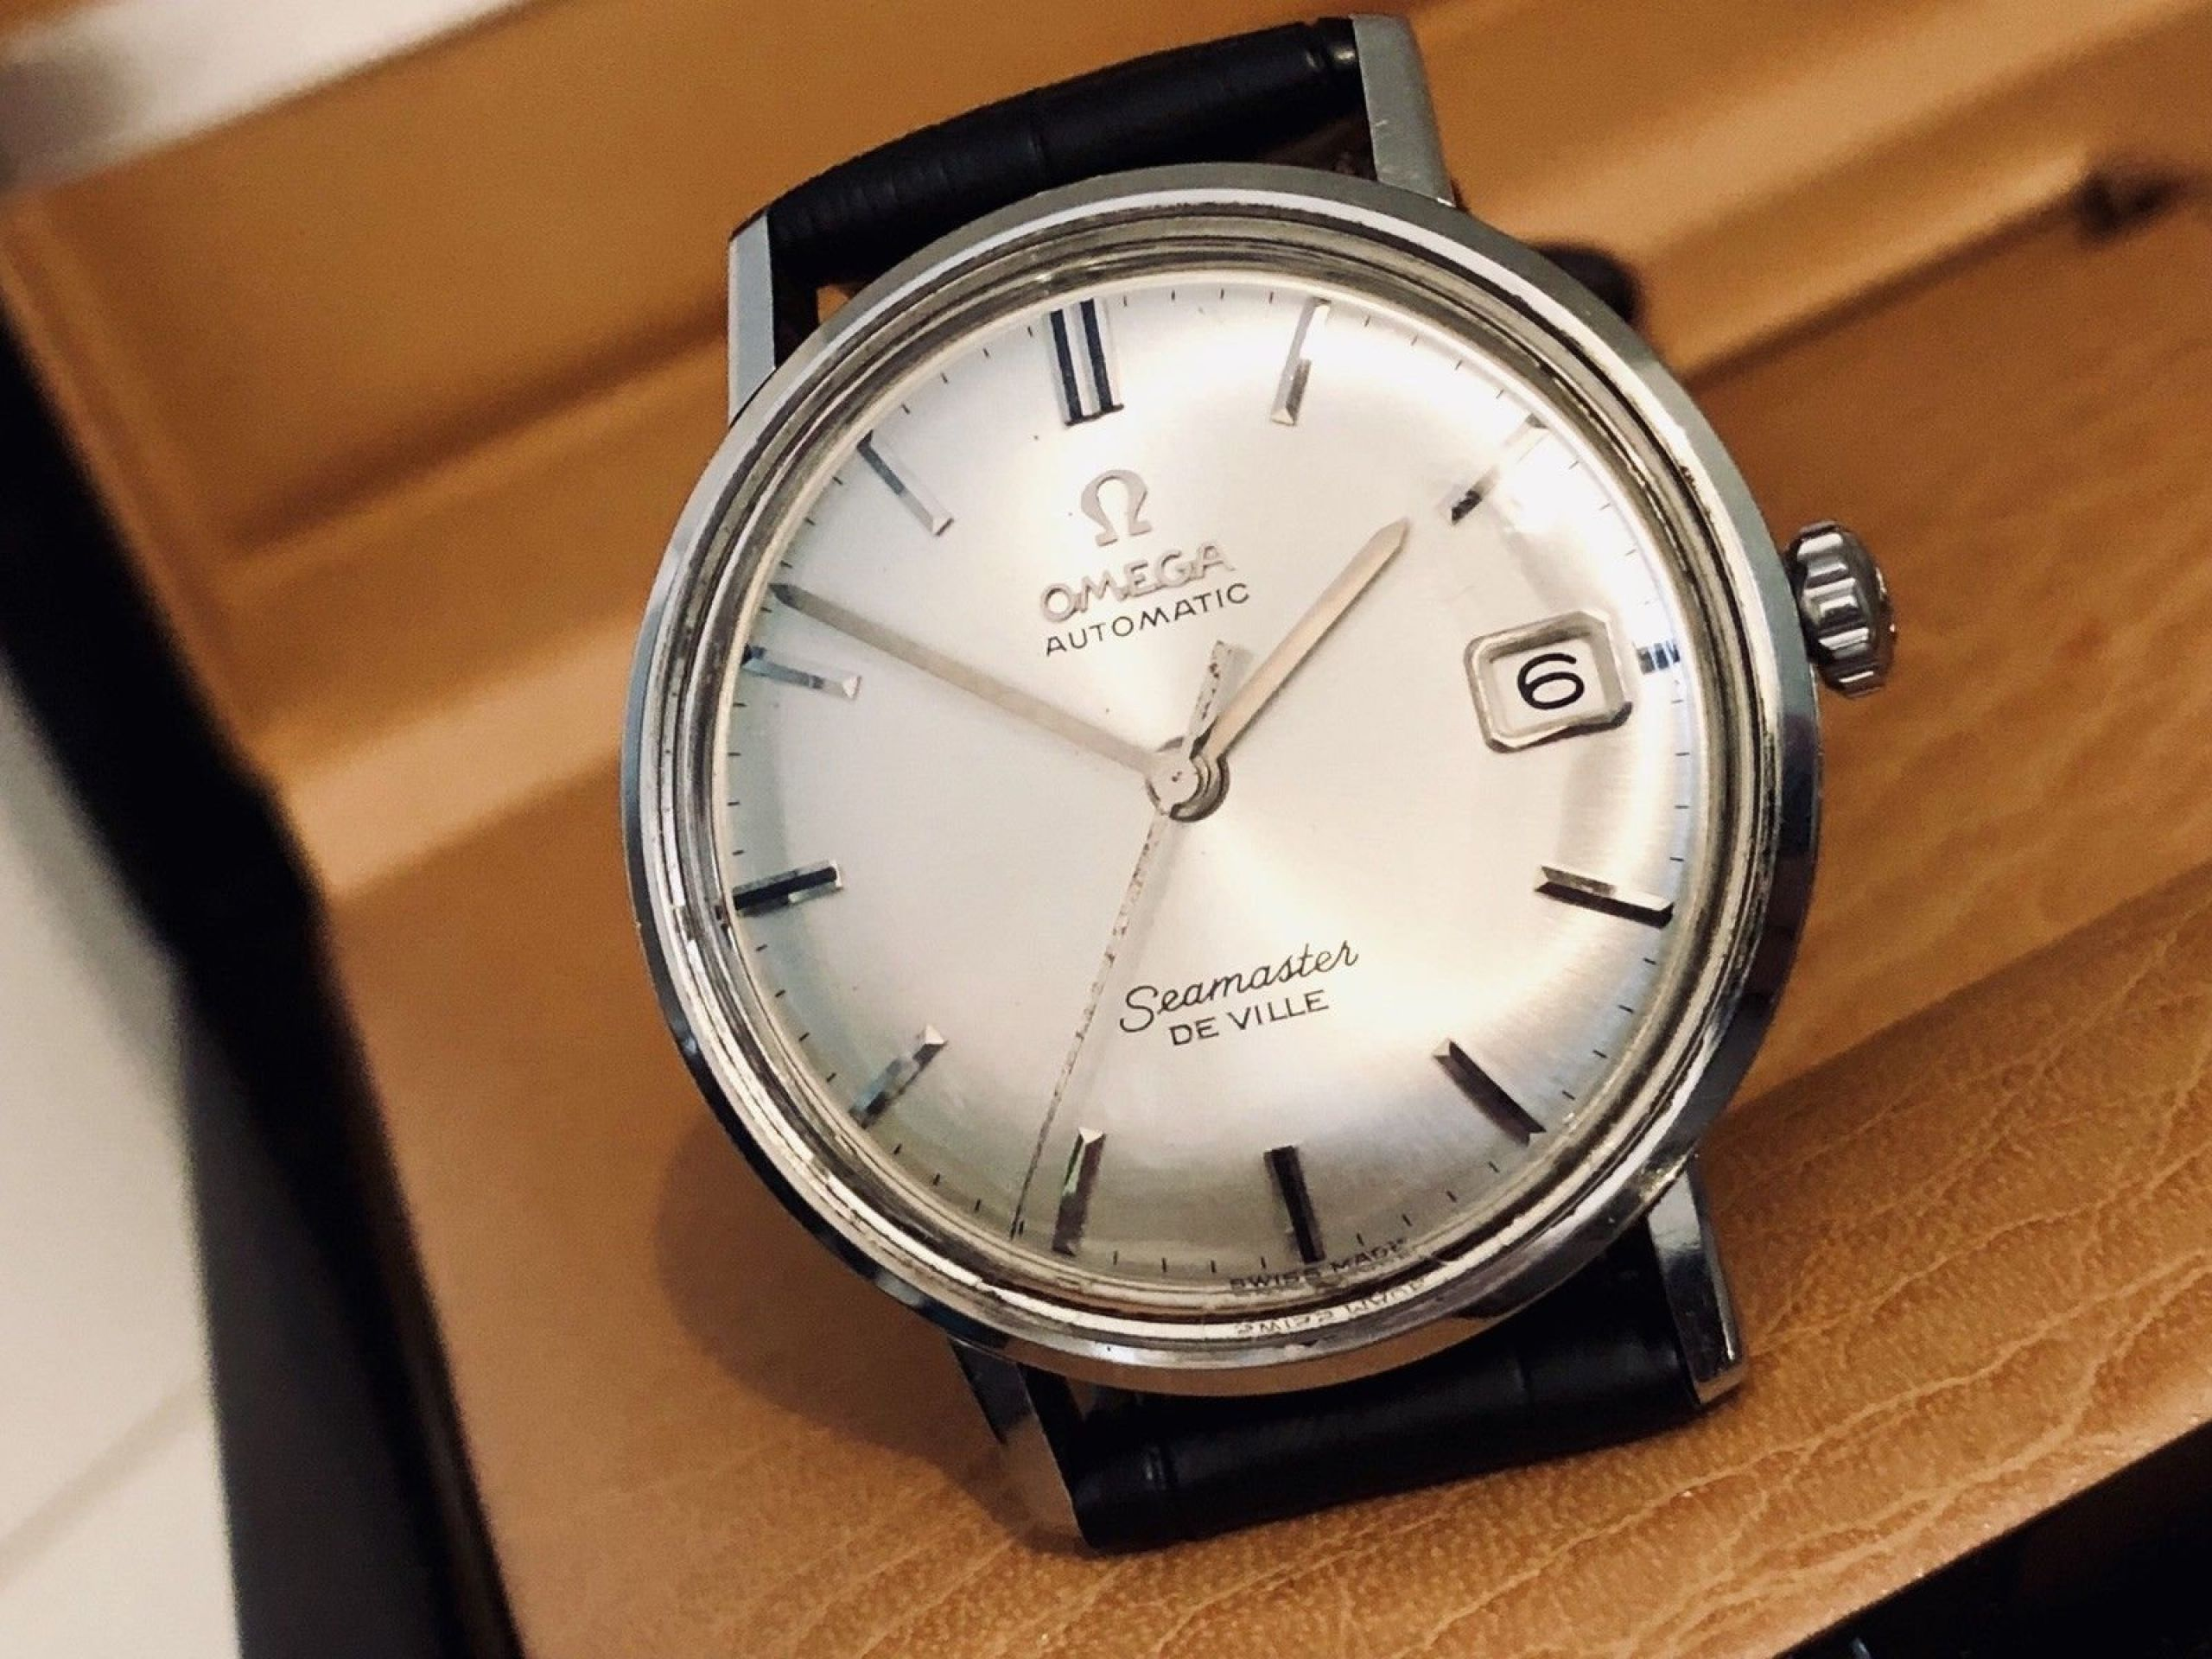 OMEGA SEAMASTER DE VILLE VINTAGE WATCH CAL 565 MECHANICAL AUTOMATIC STAINLESS